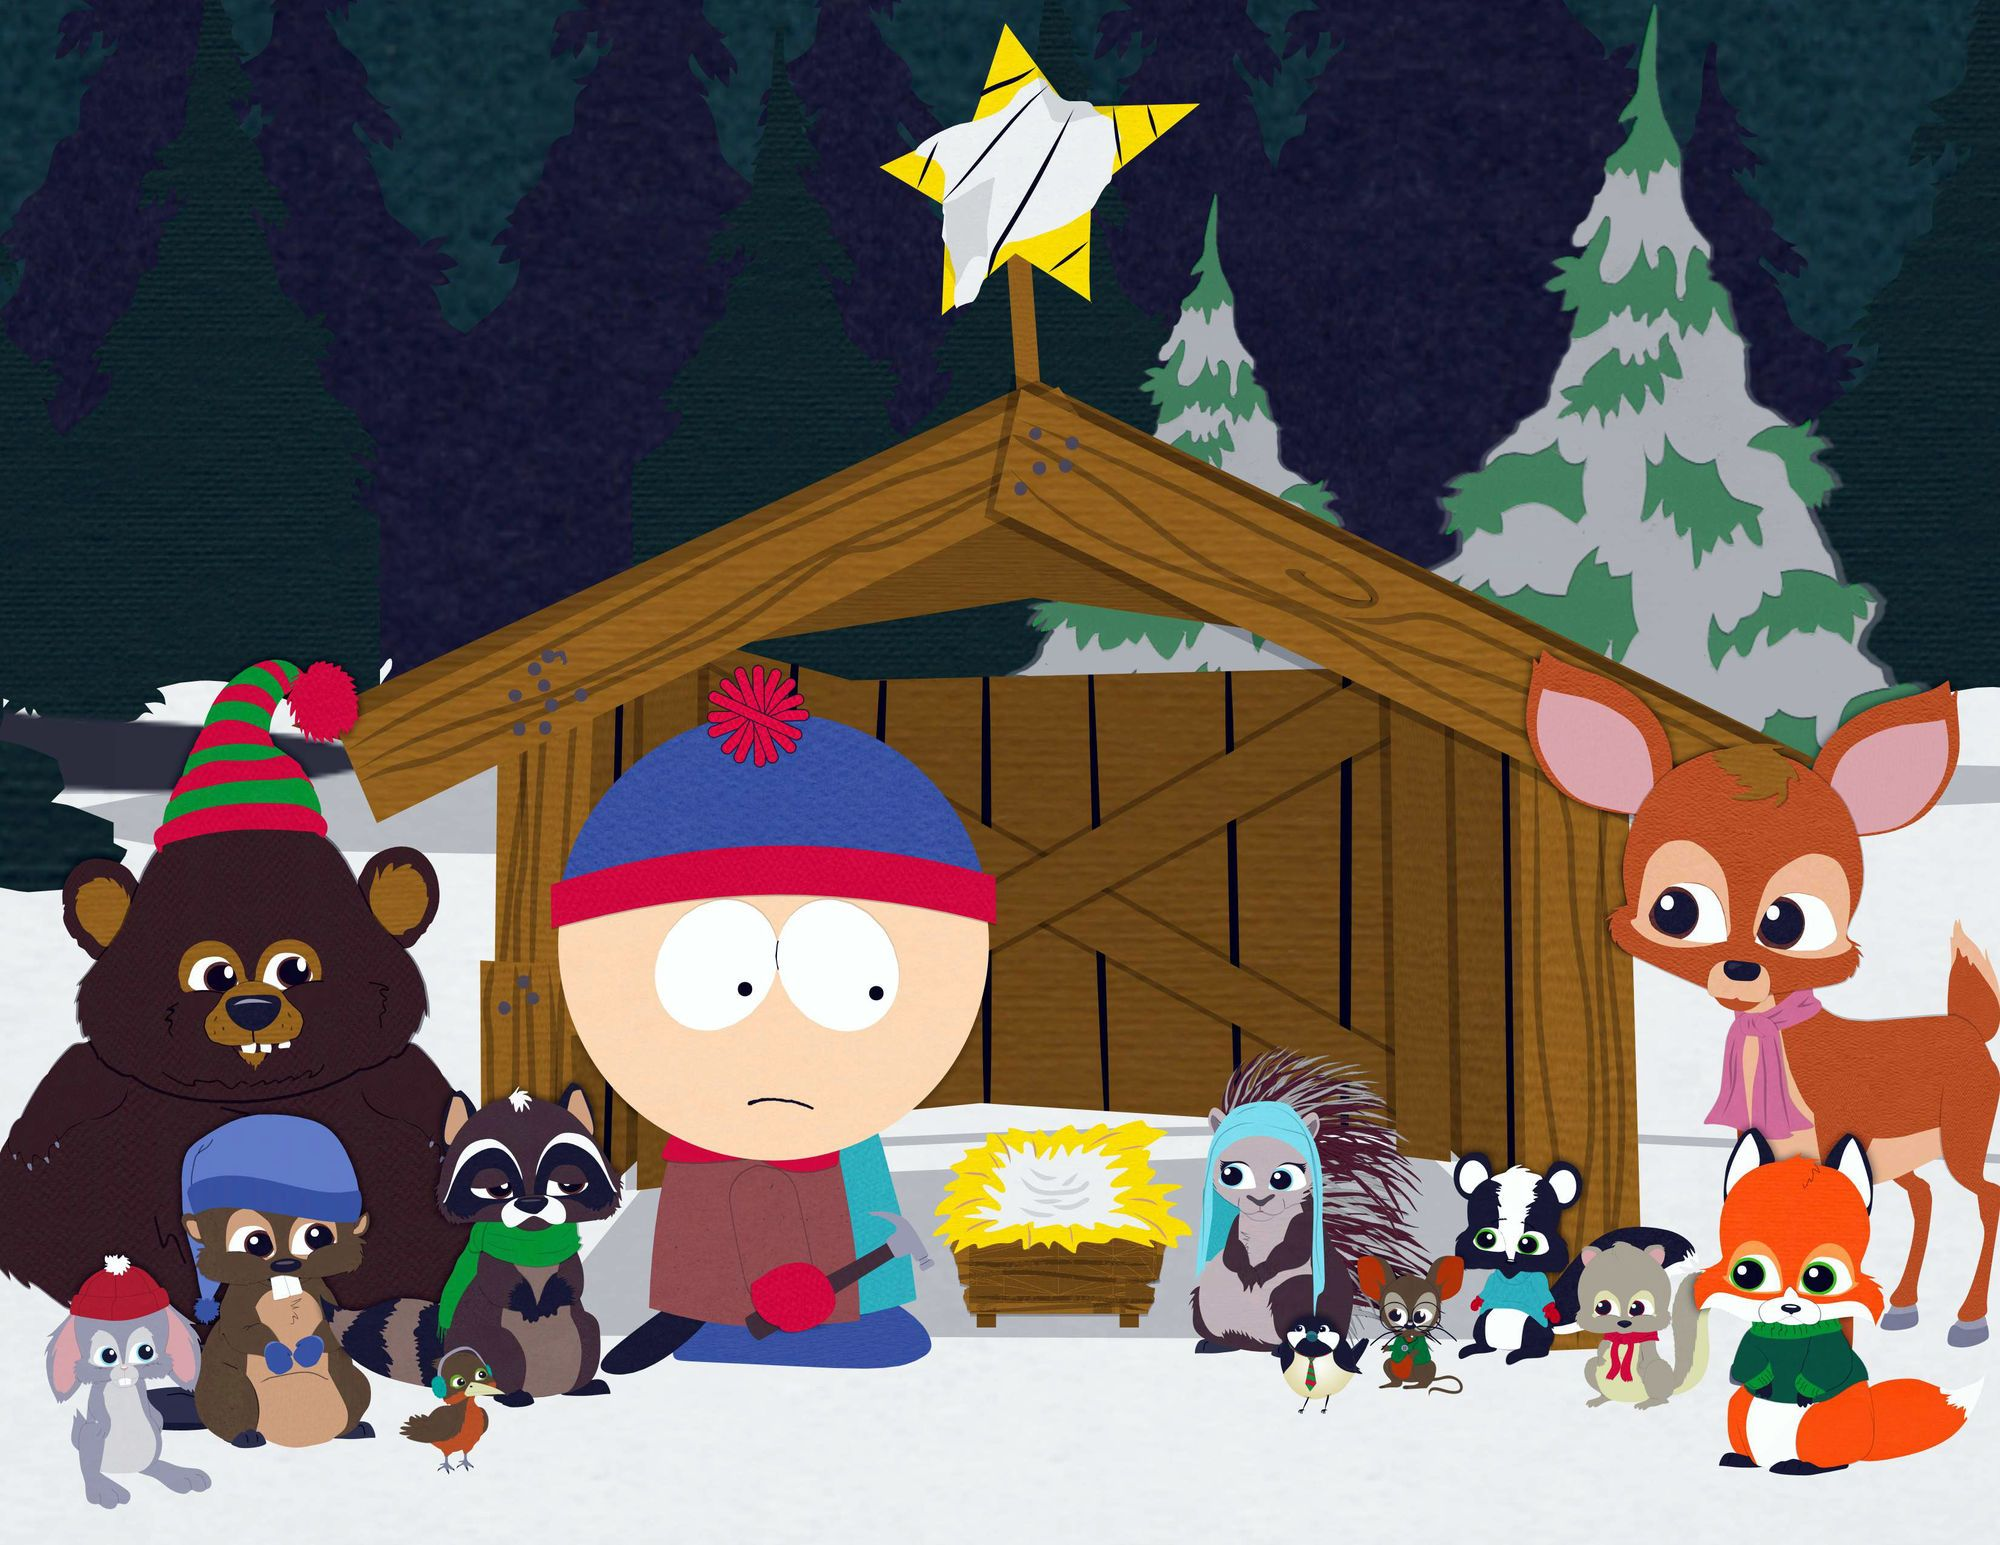 South Park Christmas 2020 Woodland Critters in 2020 | South park, Friends christmas episode